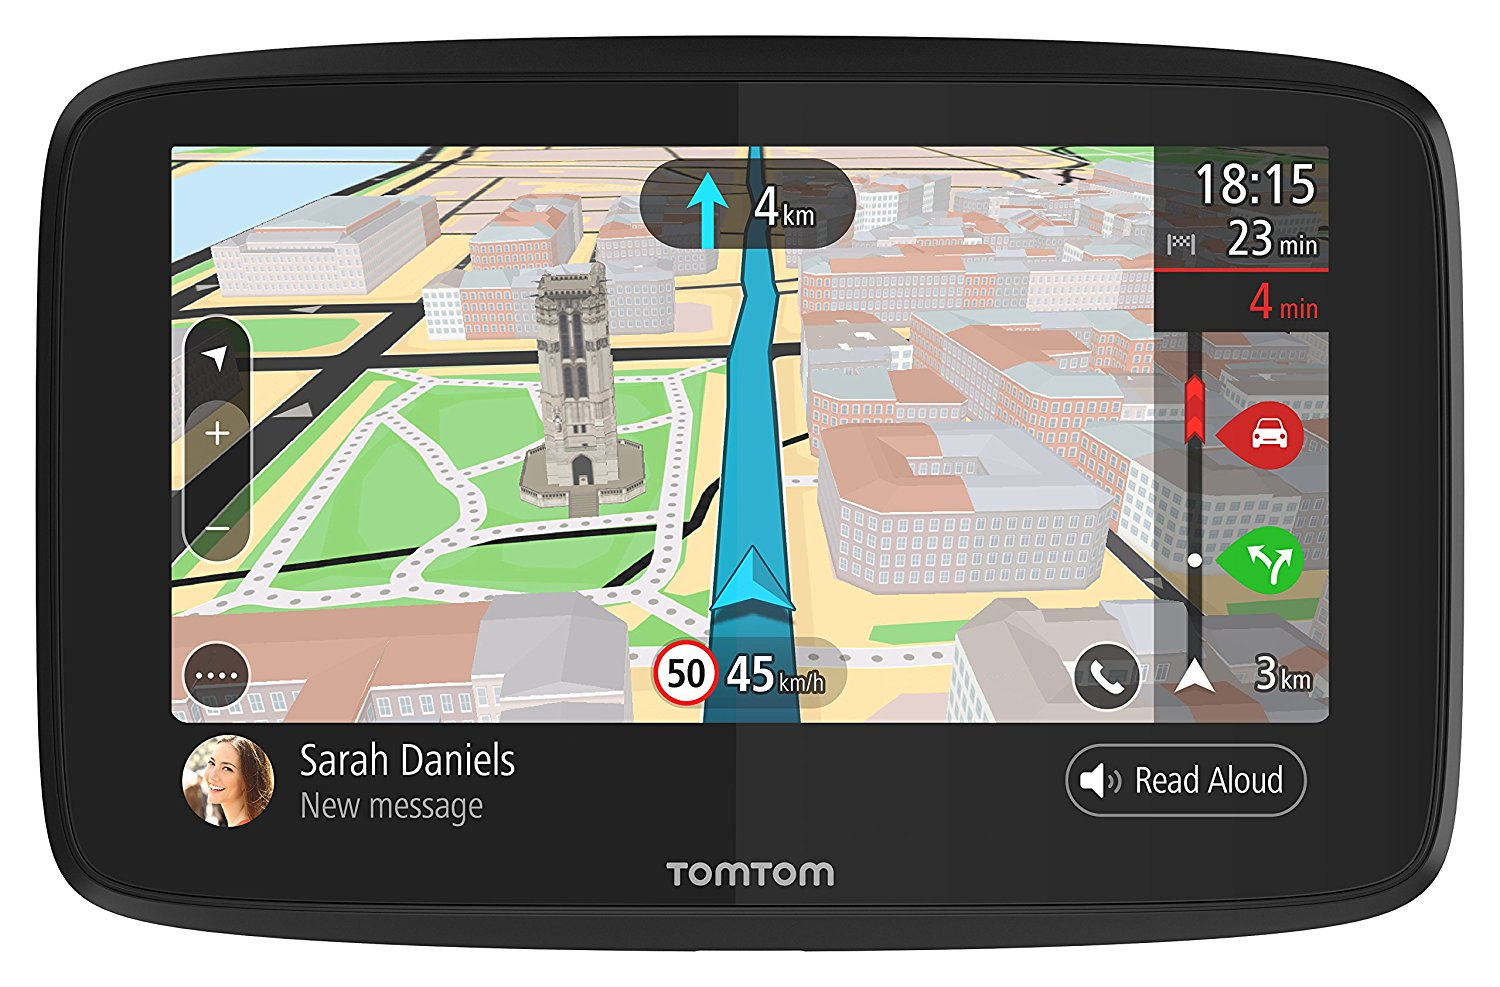 TomTom Navigationsgerät amazon